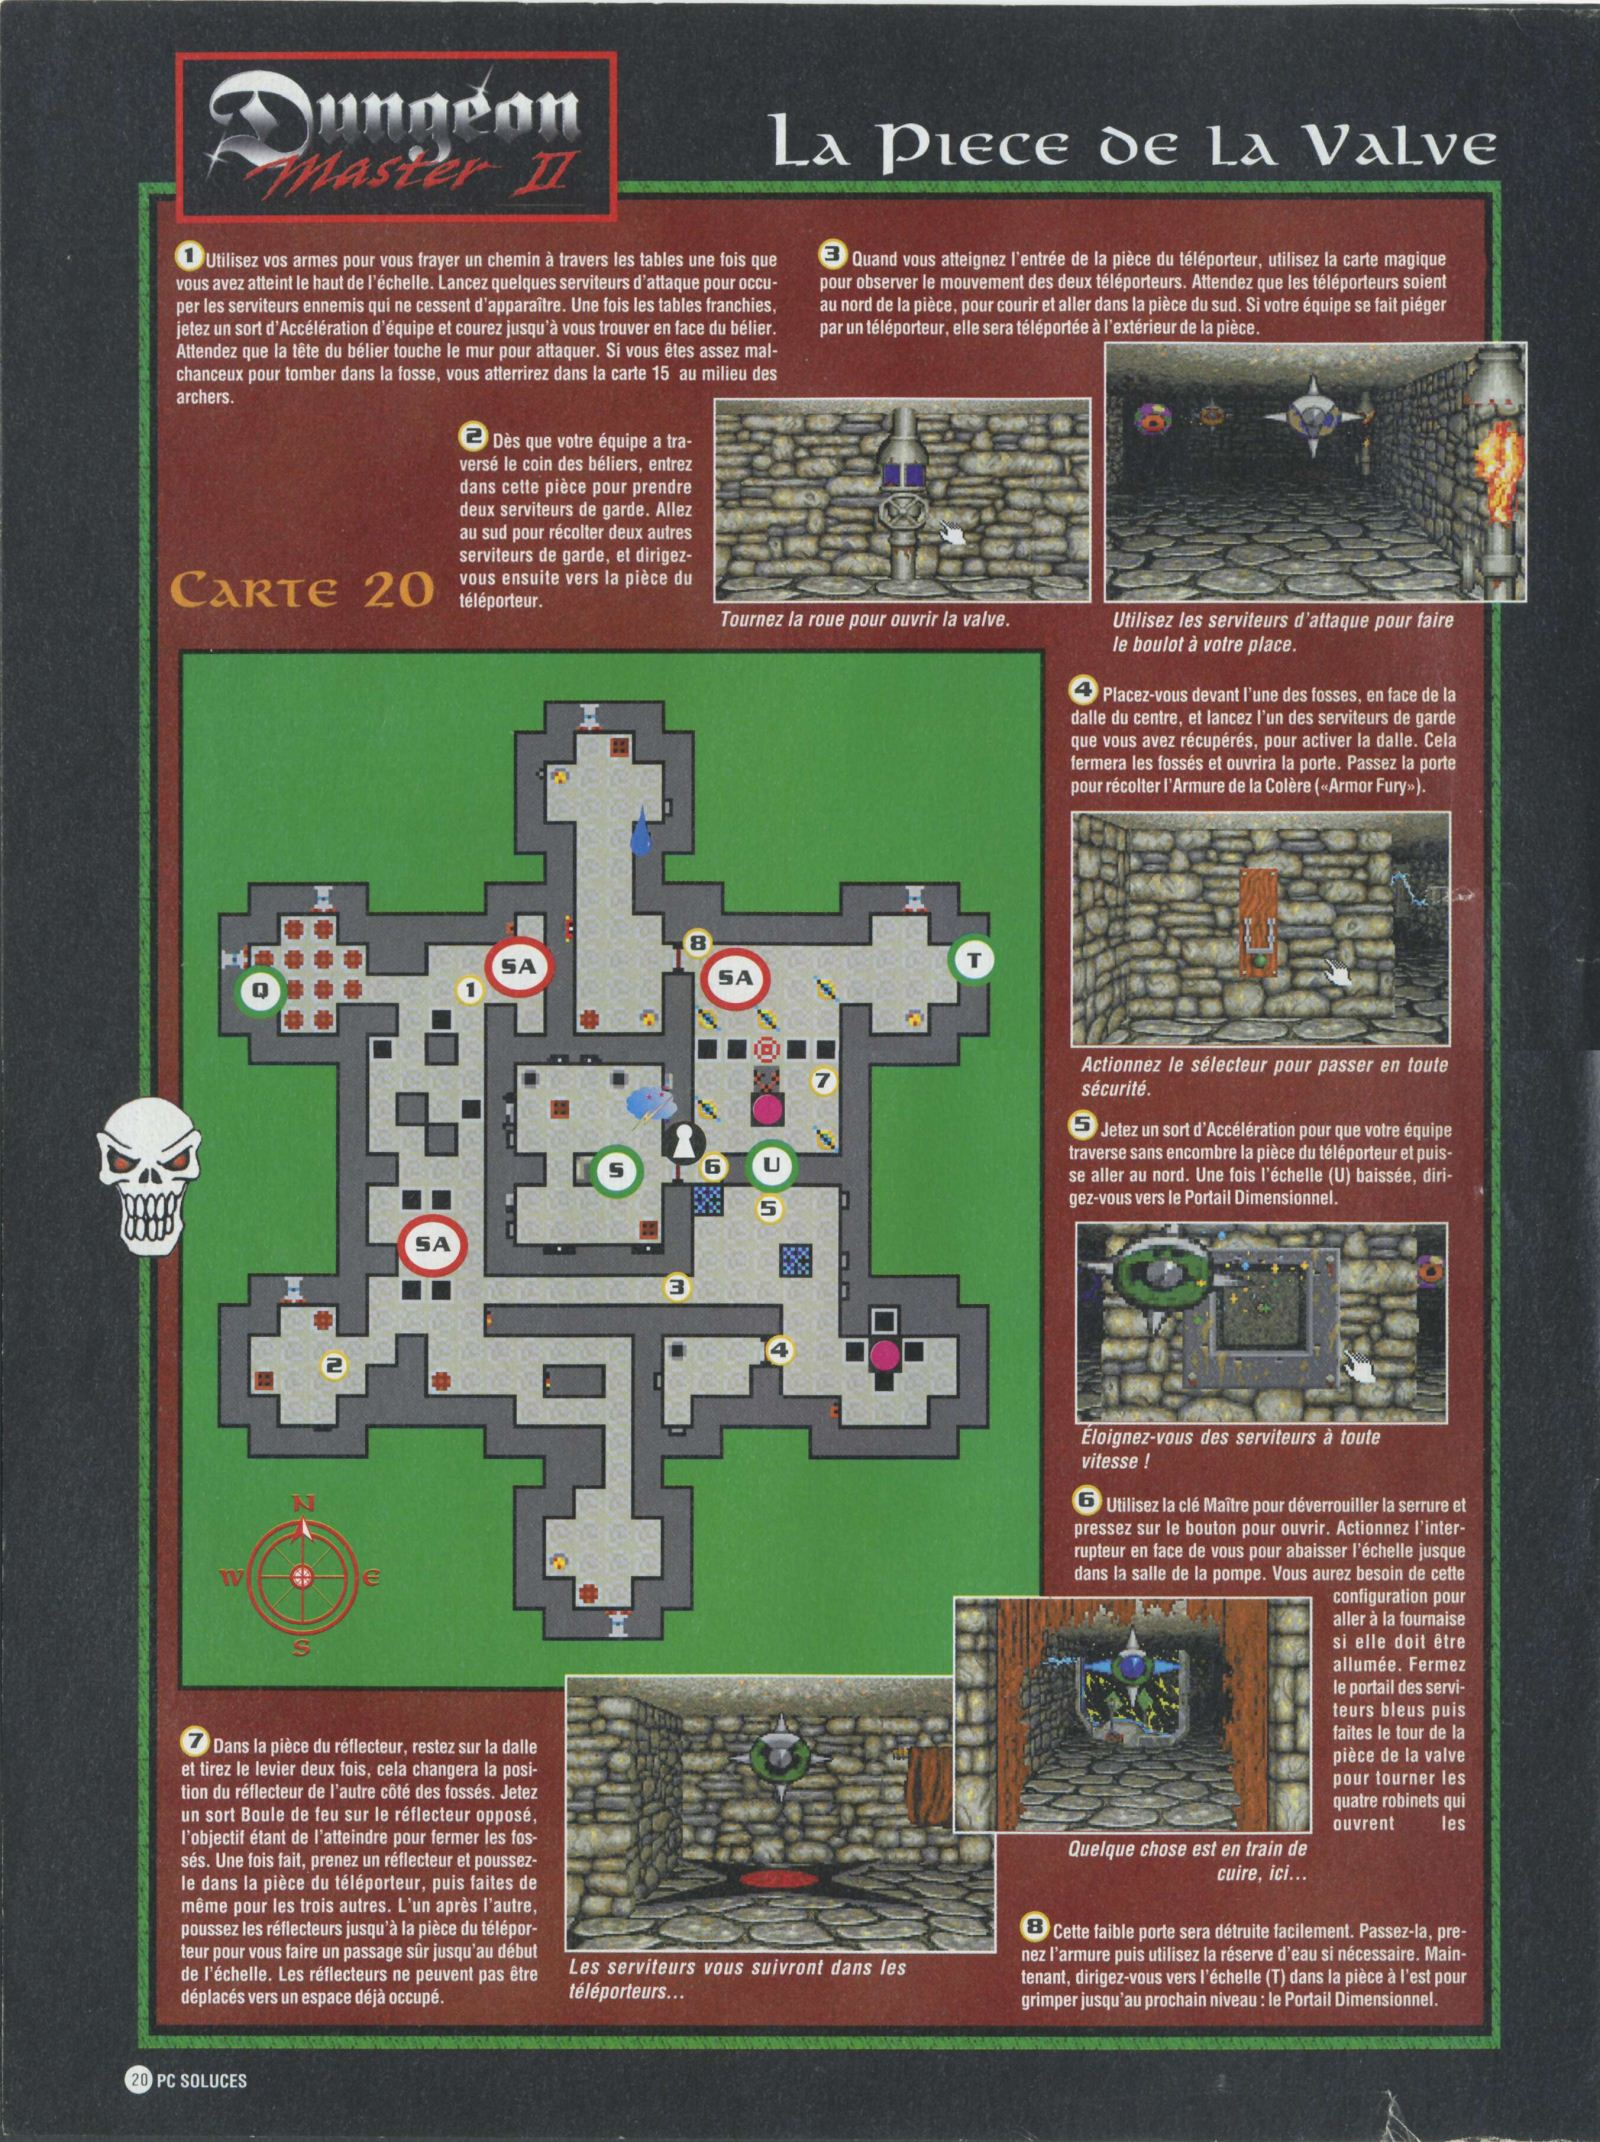 Dungeon Master II solution published in French magazine &amp;#039;PC Soluces&amp;#039;, Issue#1, February-March 1996, Page20